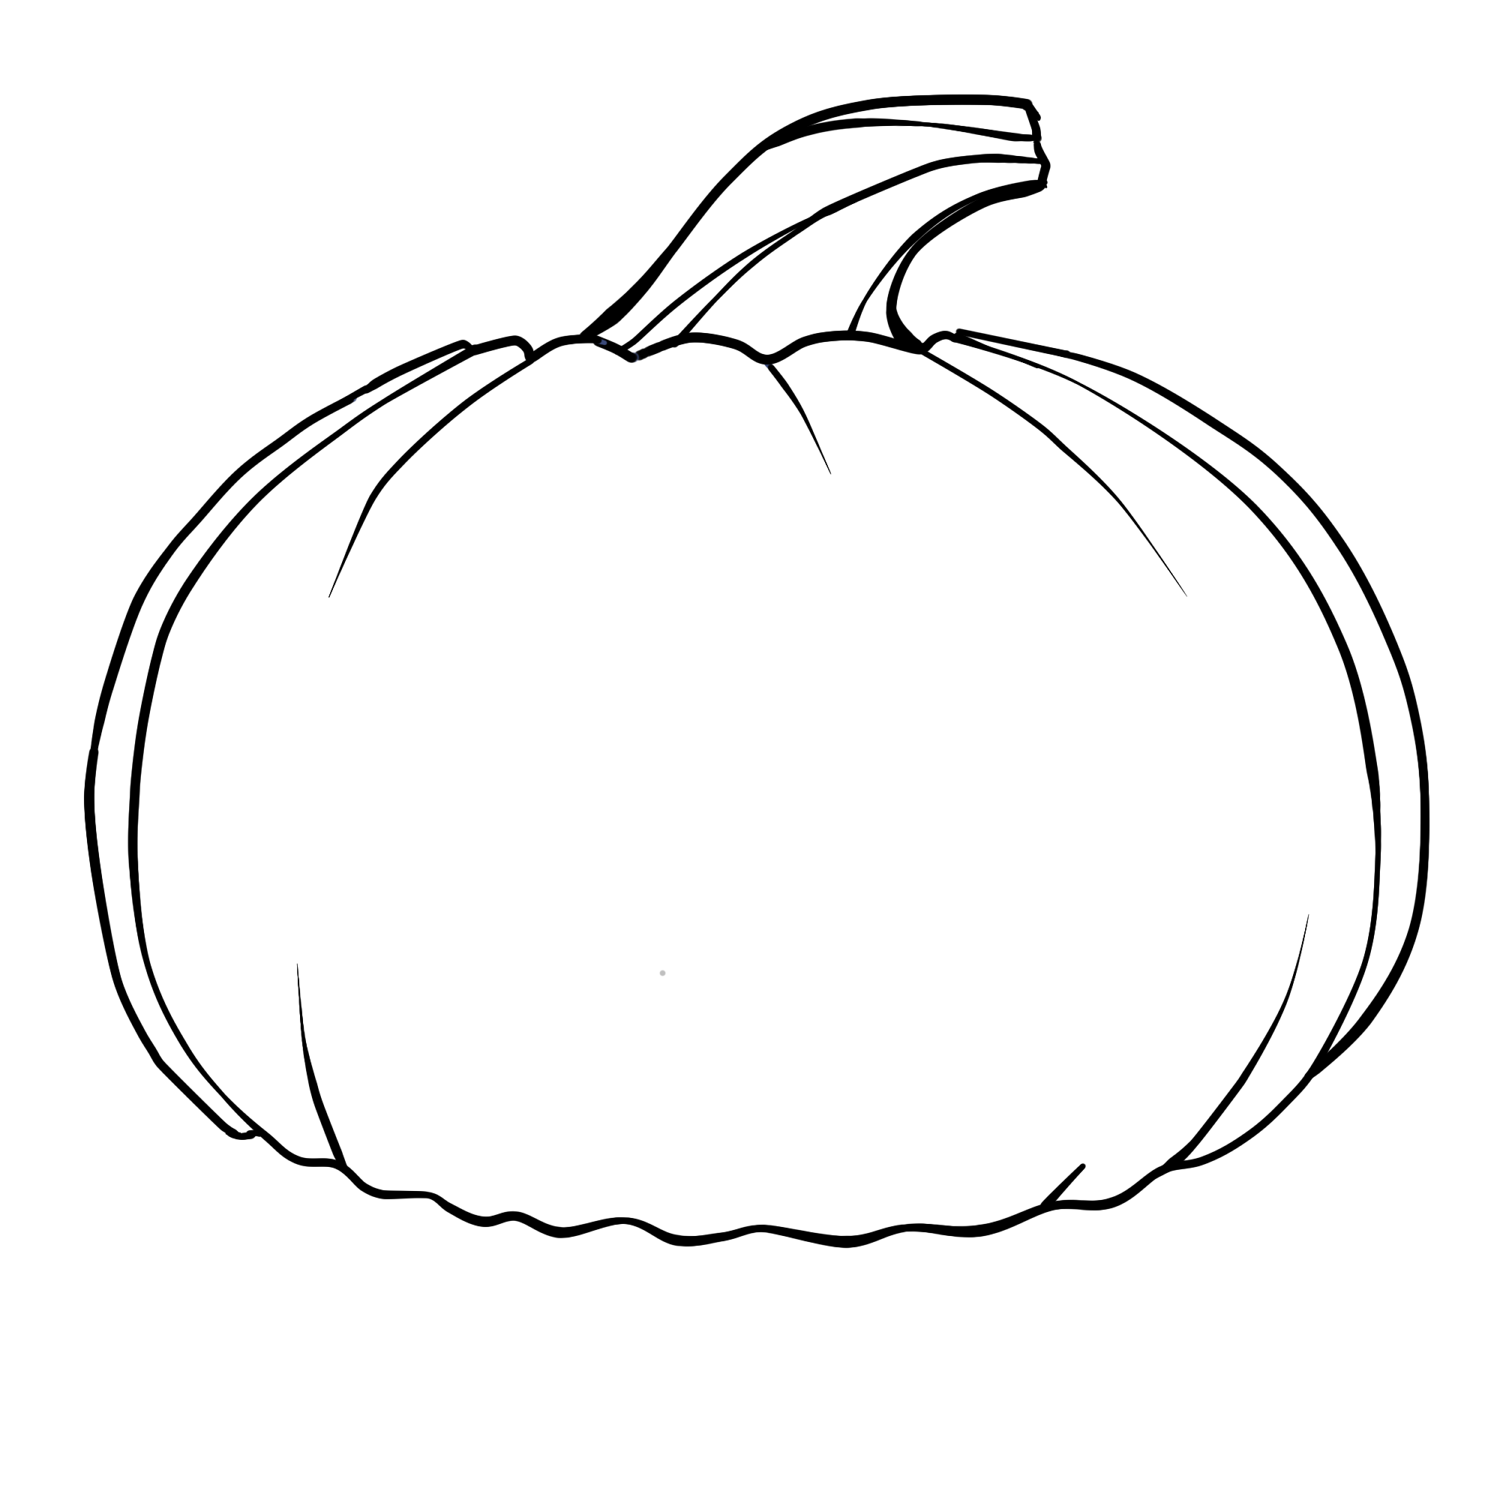 Free outline of a. Pumpkin clipart drawing